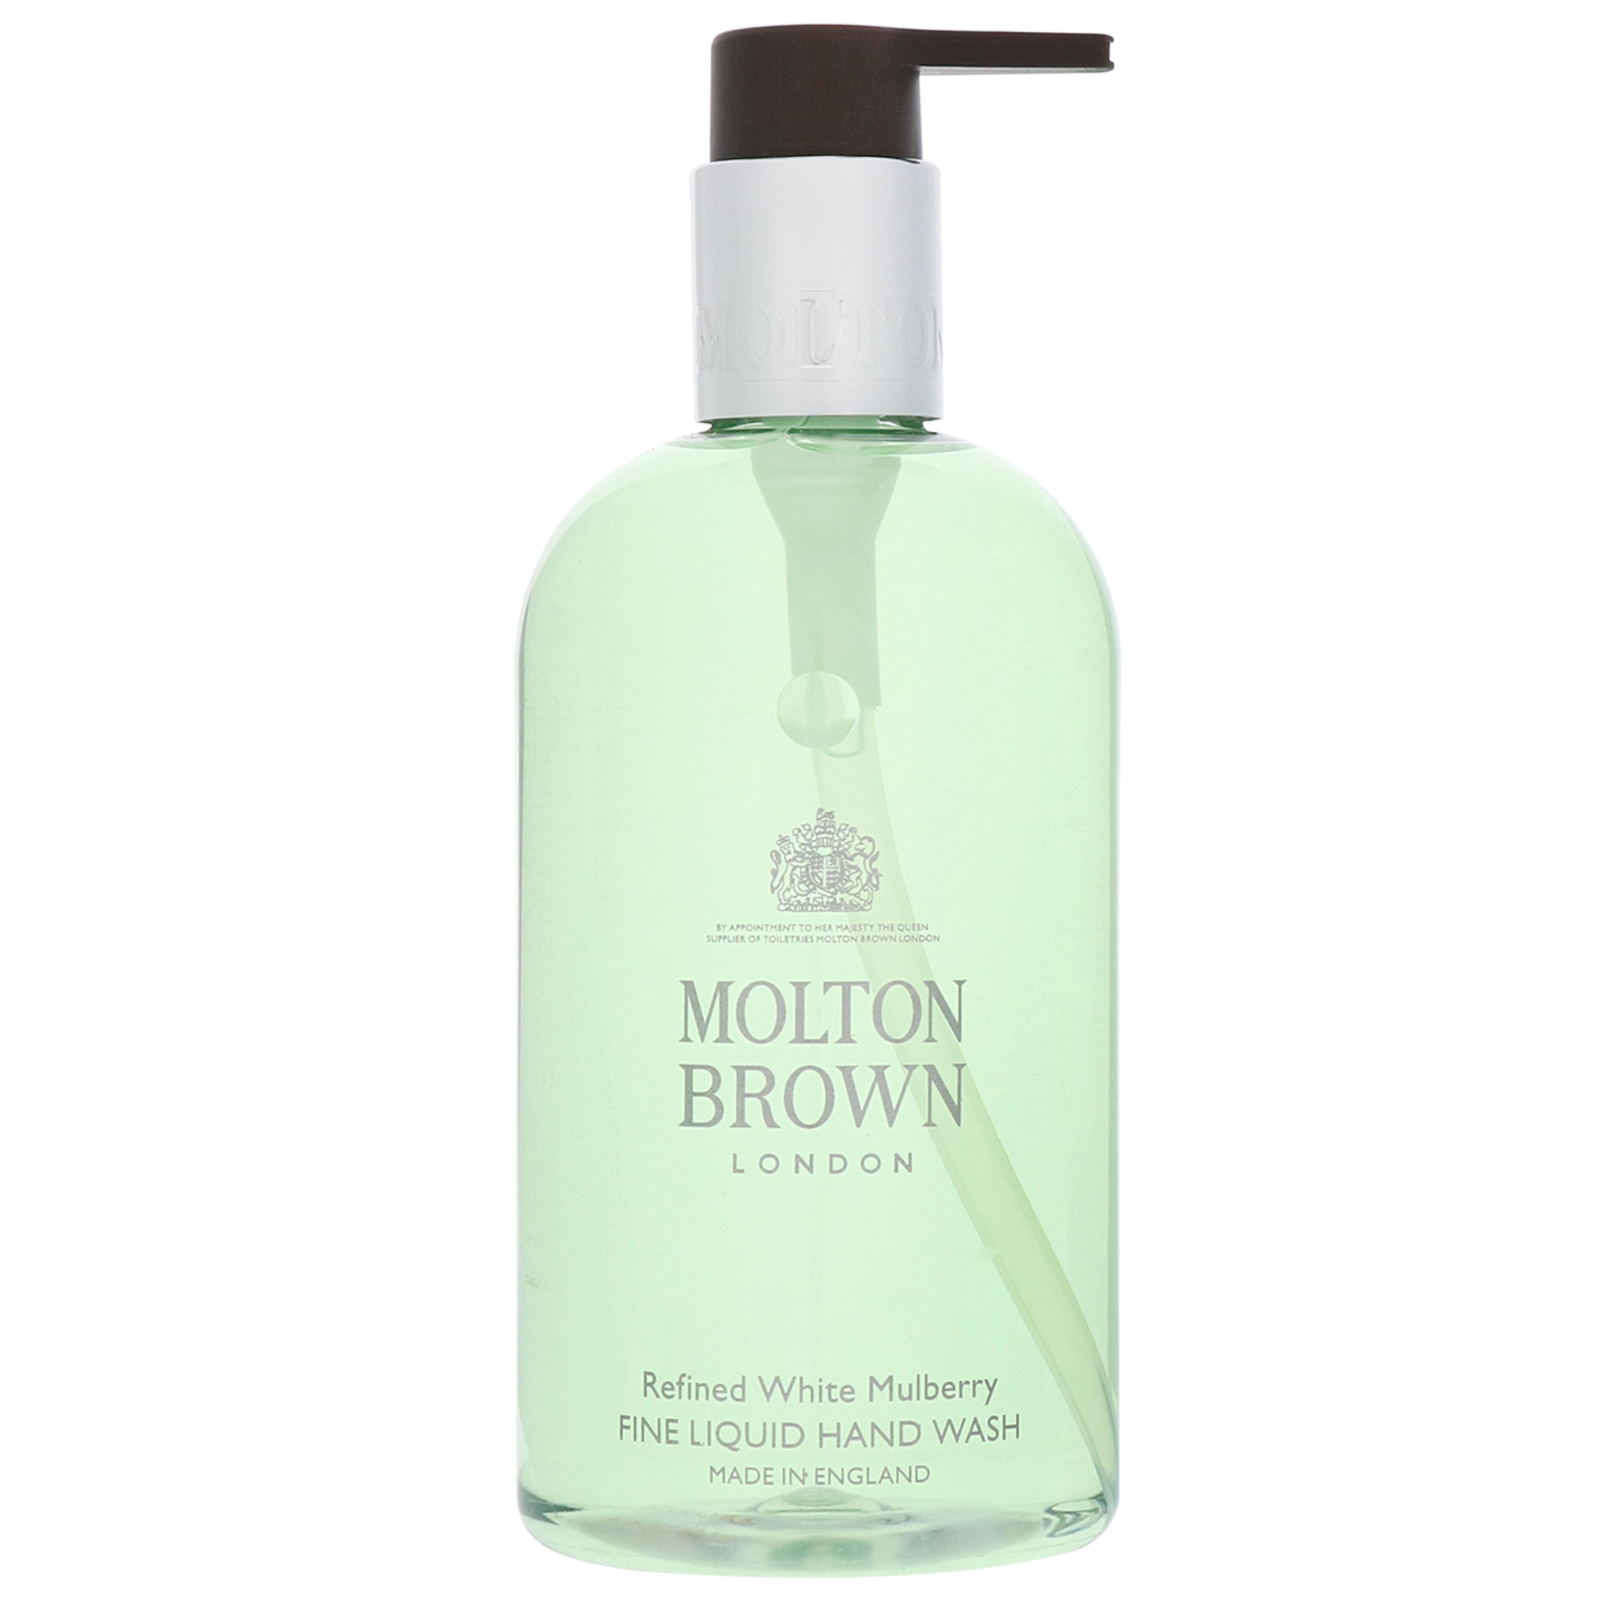 Molton Brown Refined White Mulberry Fine Liquid Hand Wash 300ml